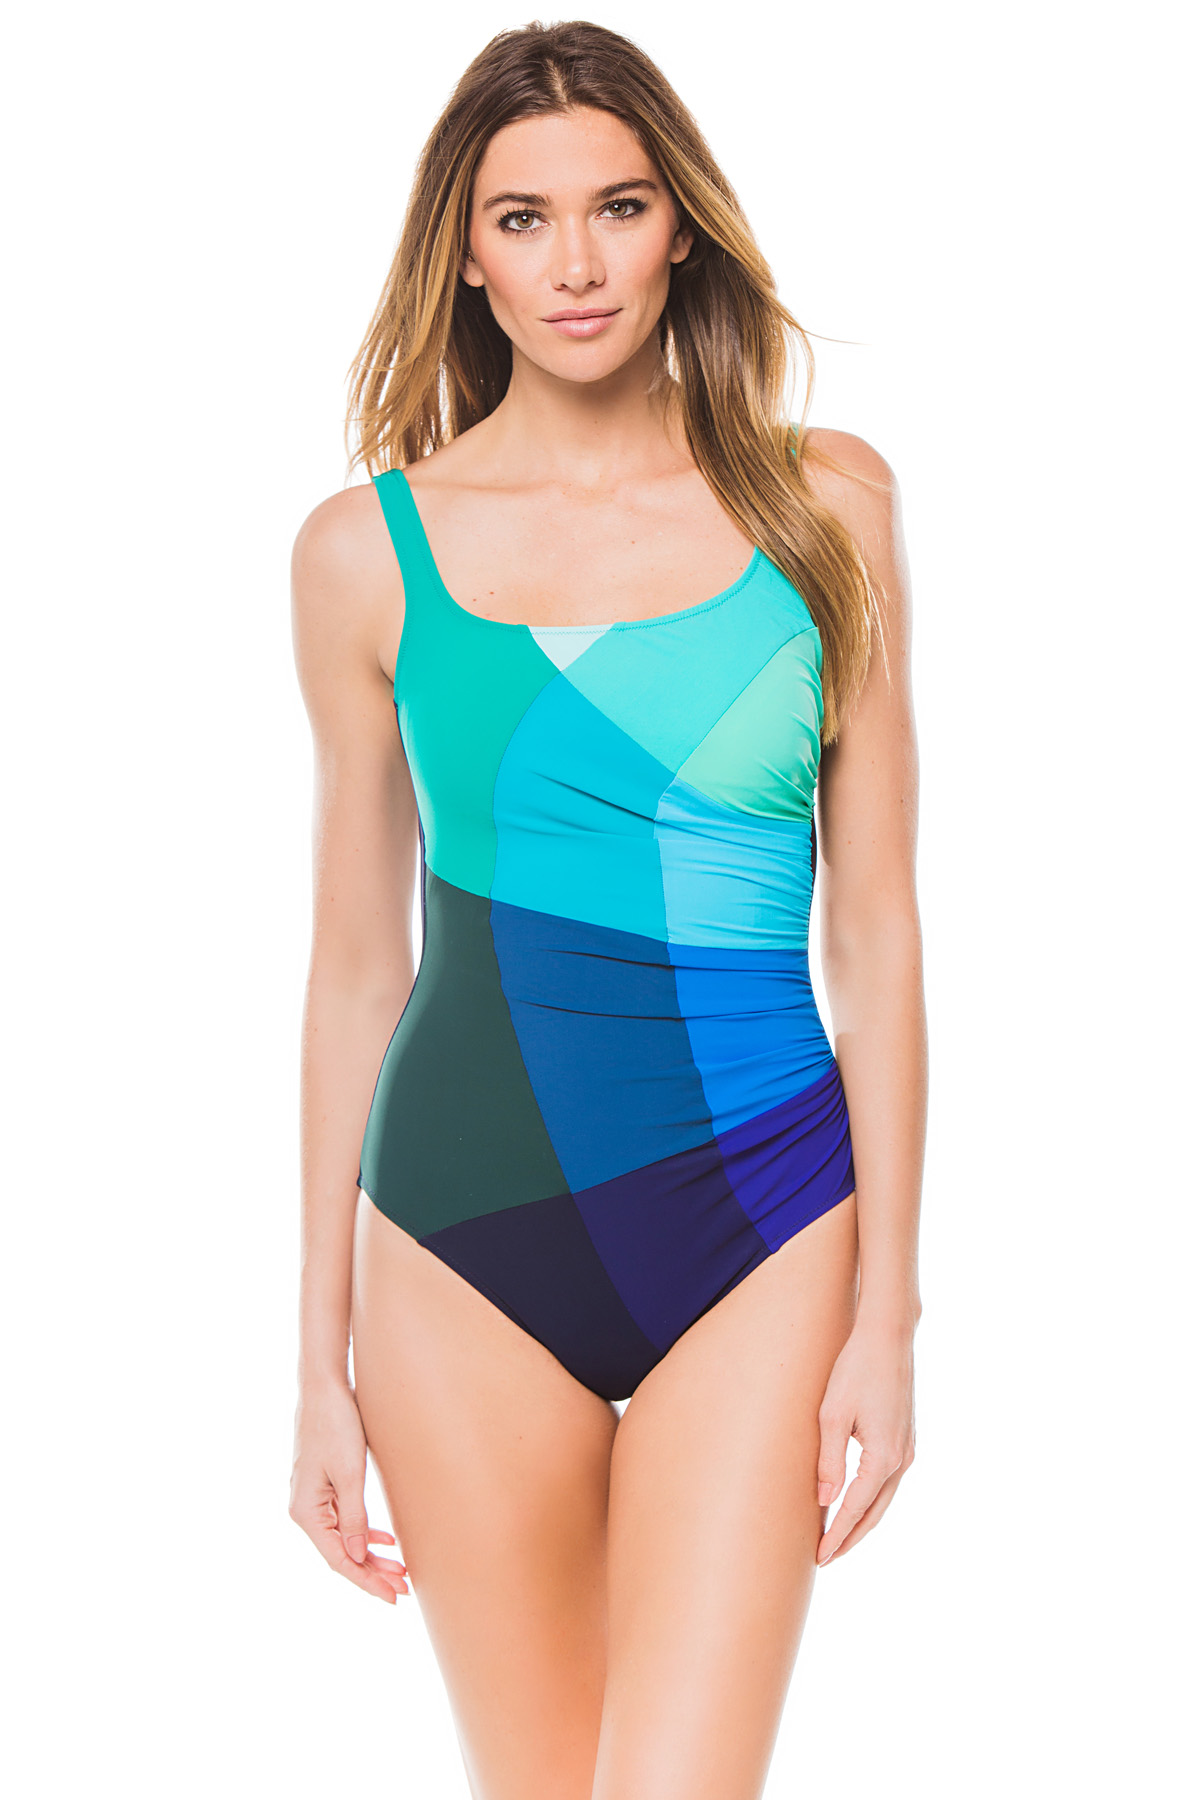 Classic Over The Shoulder One Piece Swimsuit (D Cup) - Multi